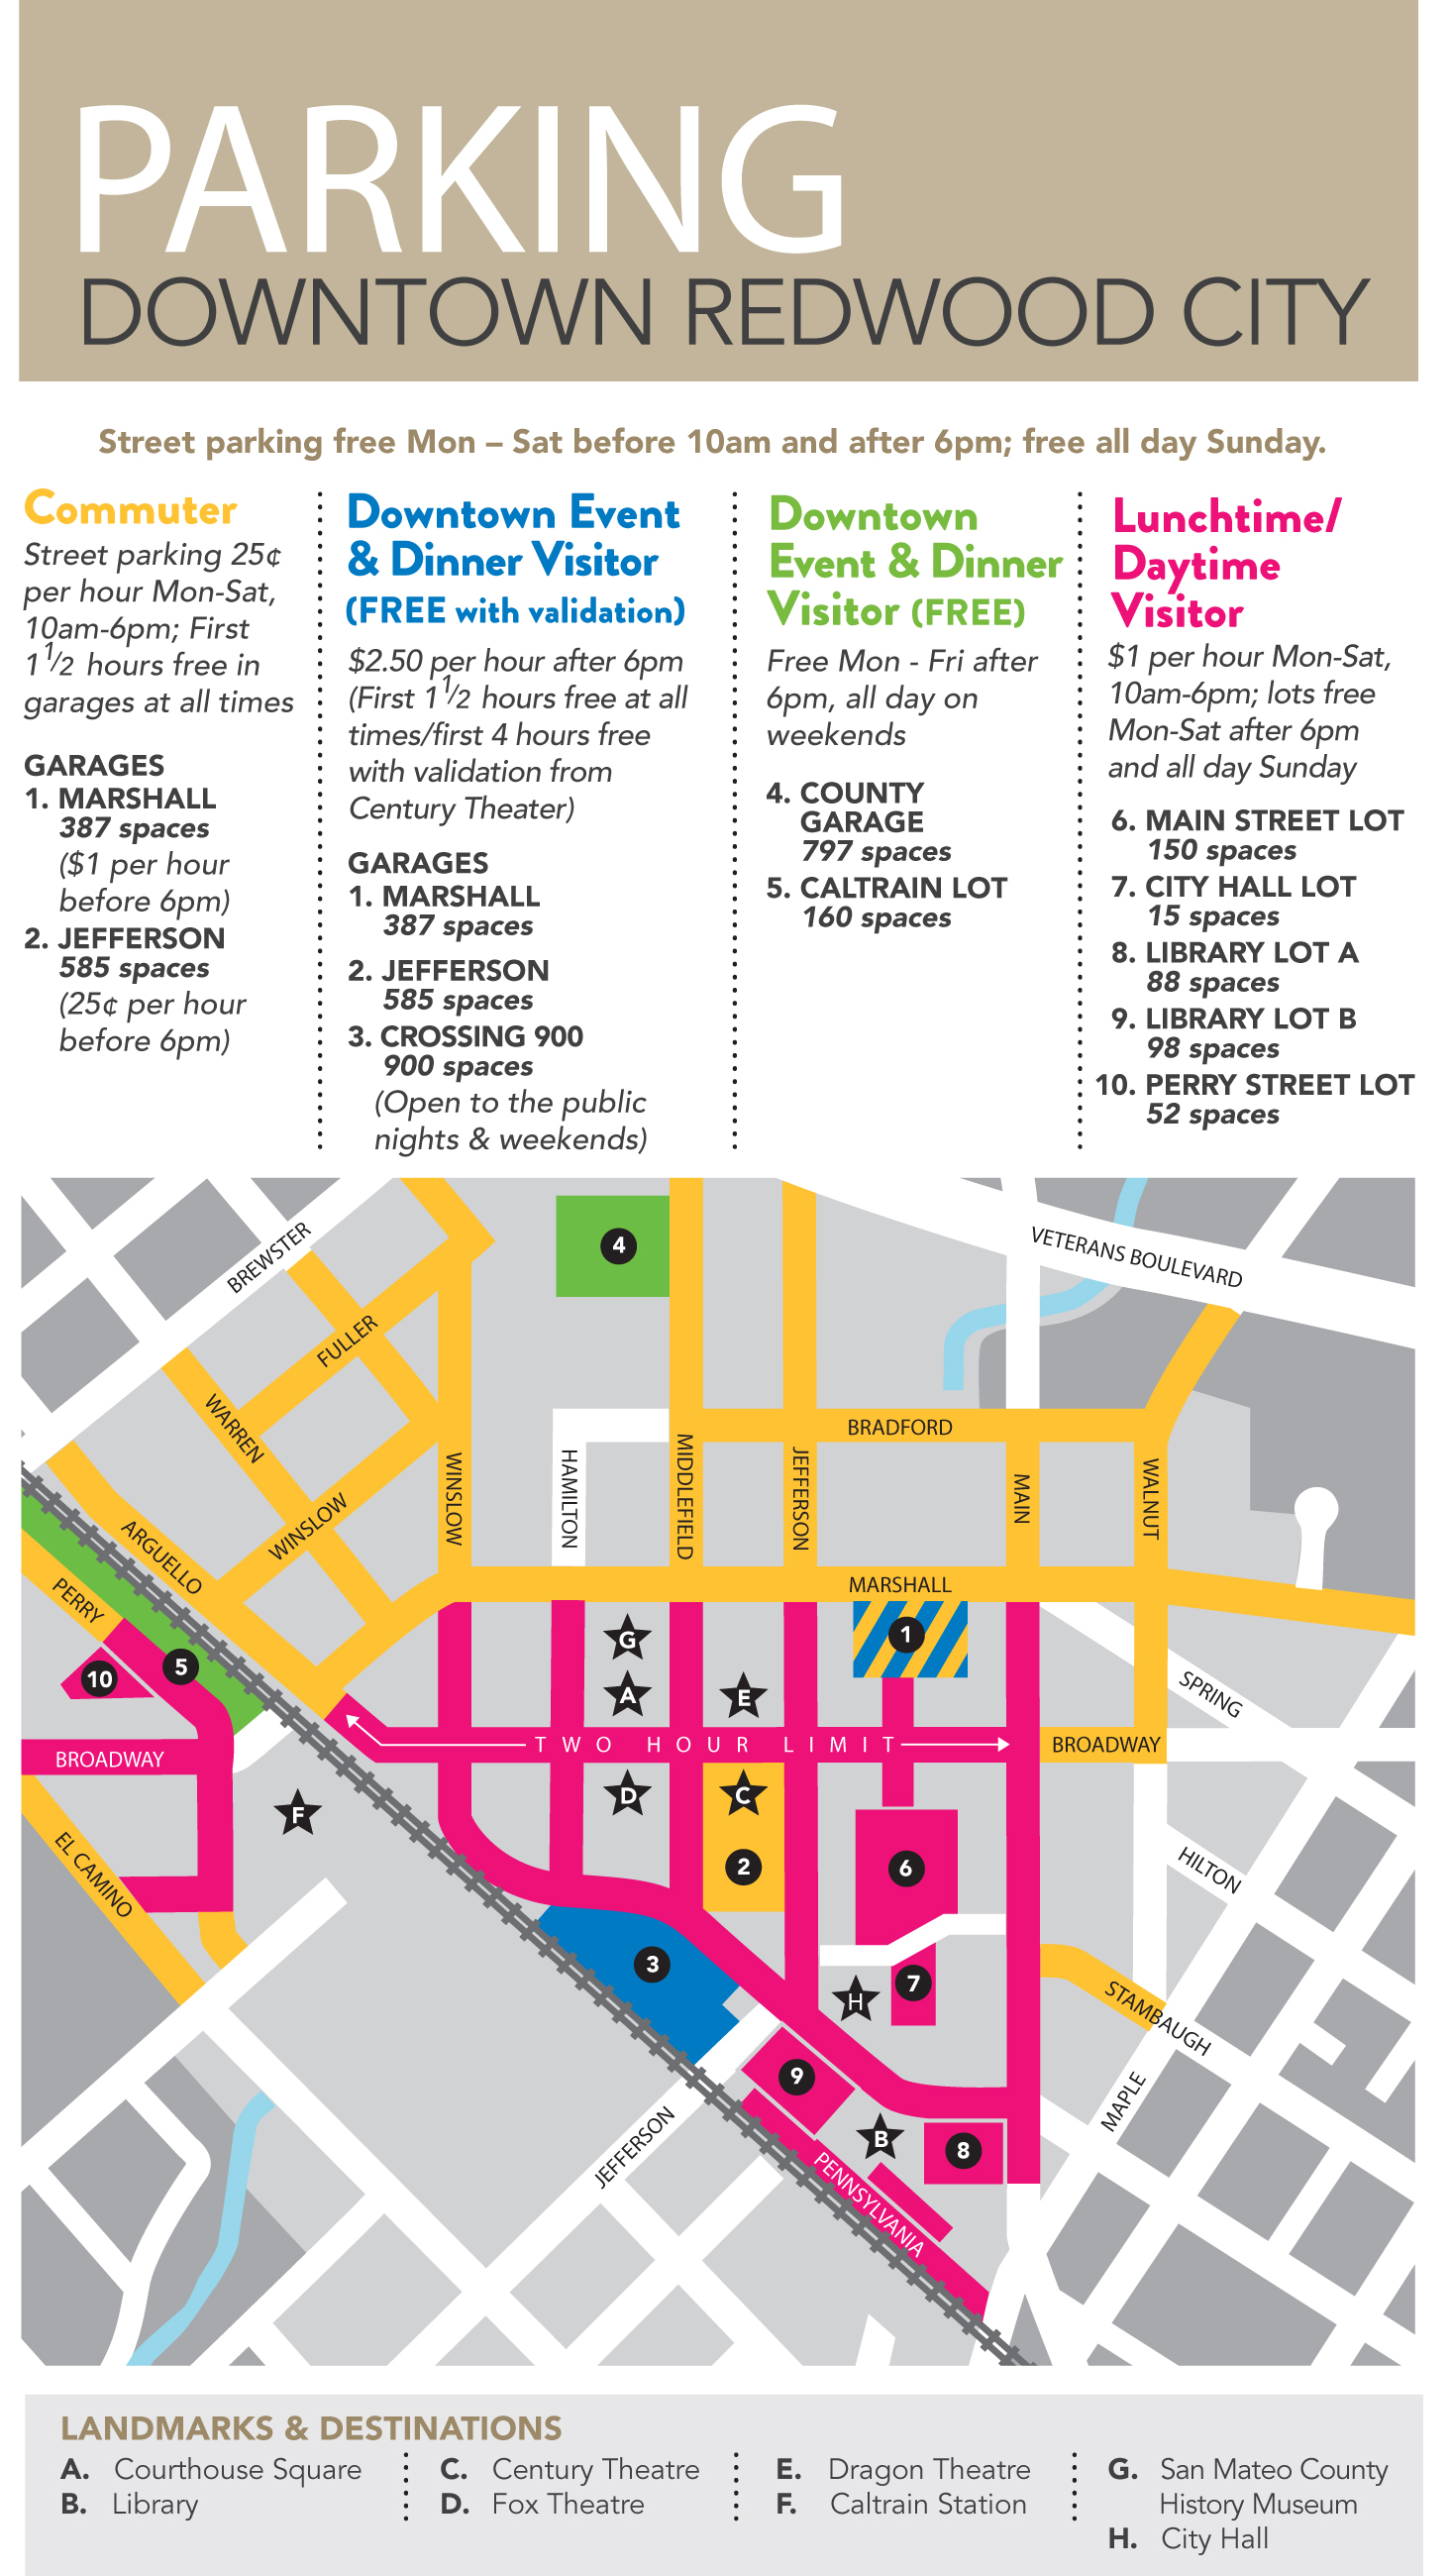 Parking Map Revised_12-23